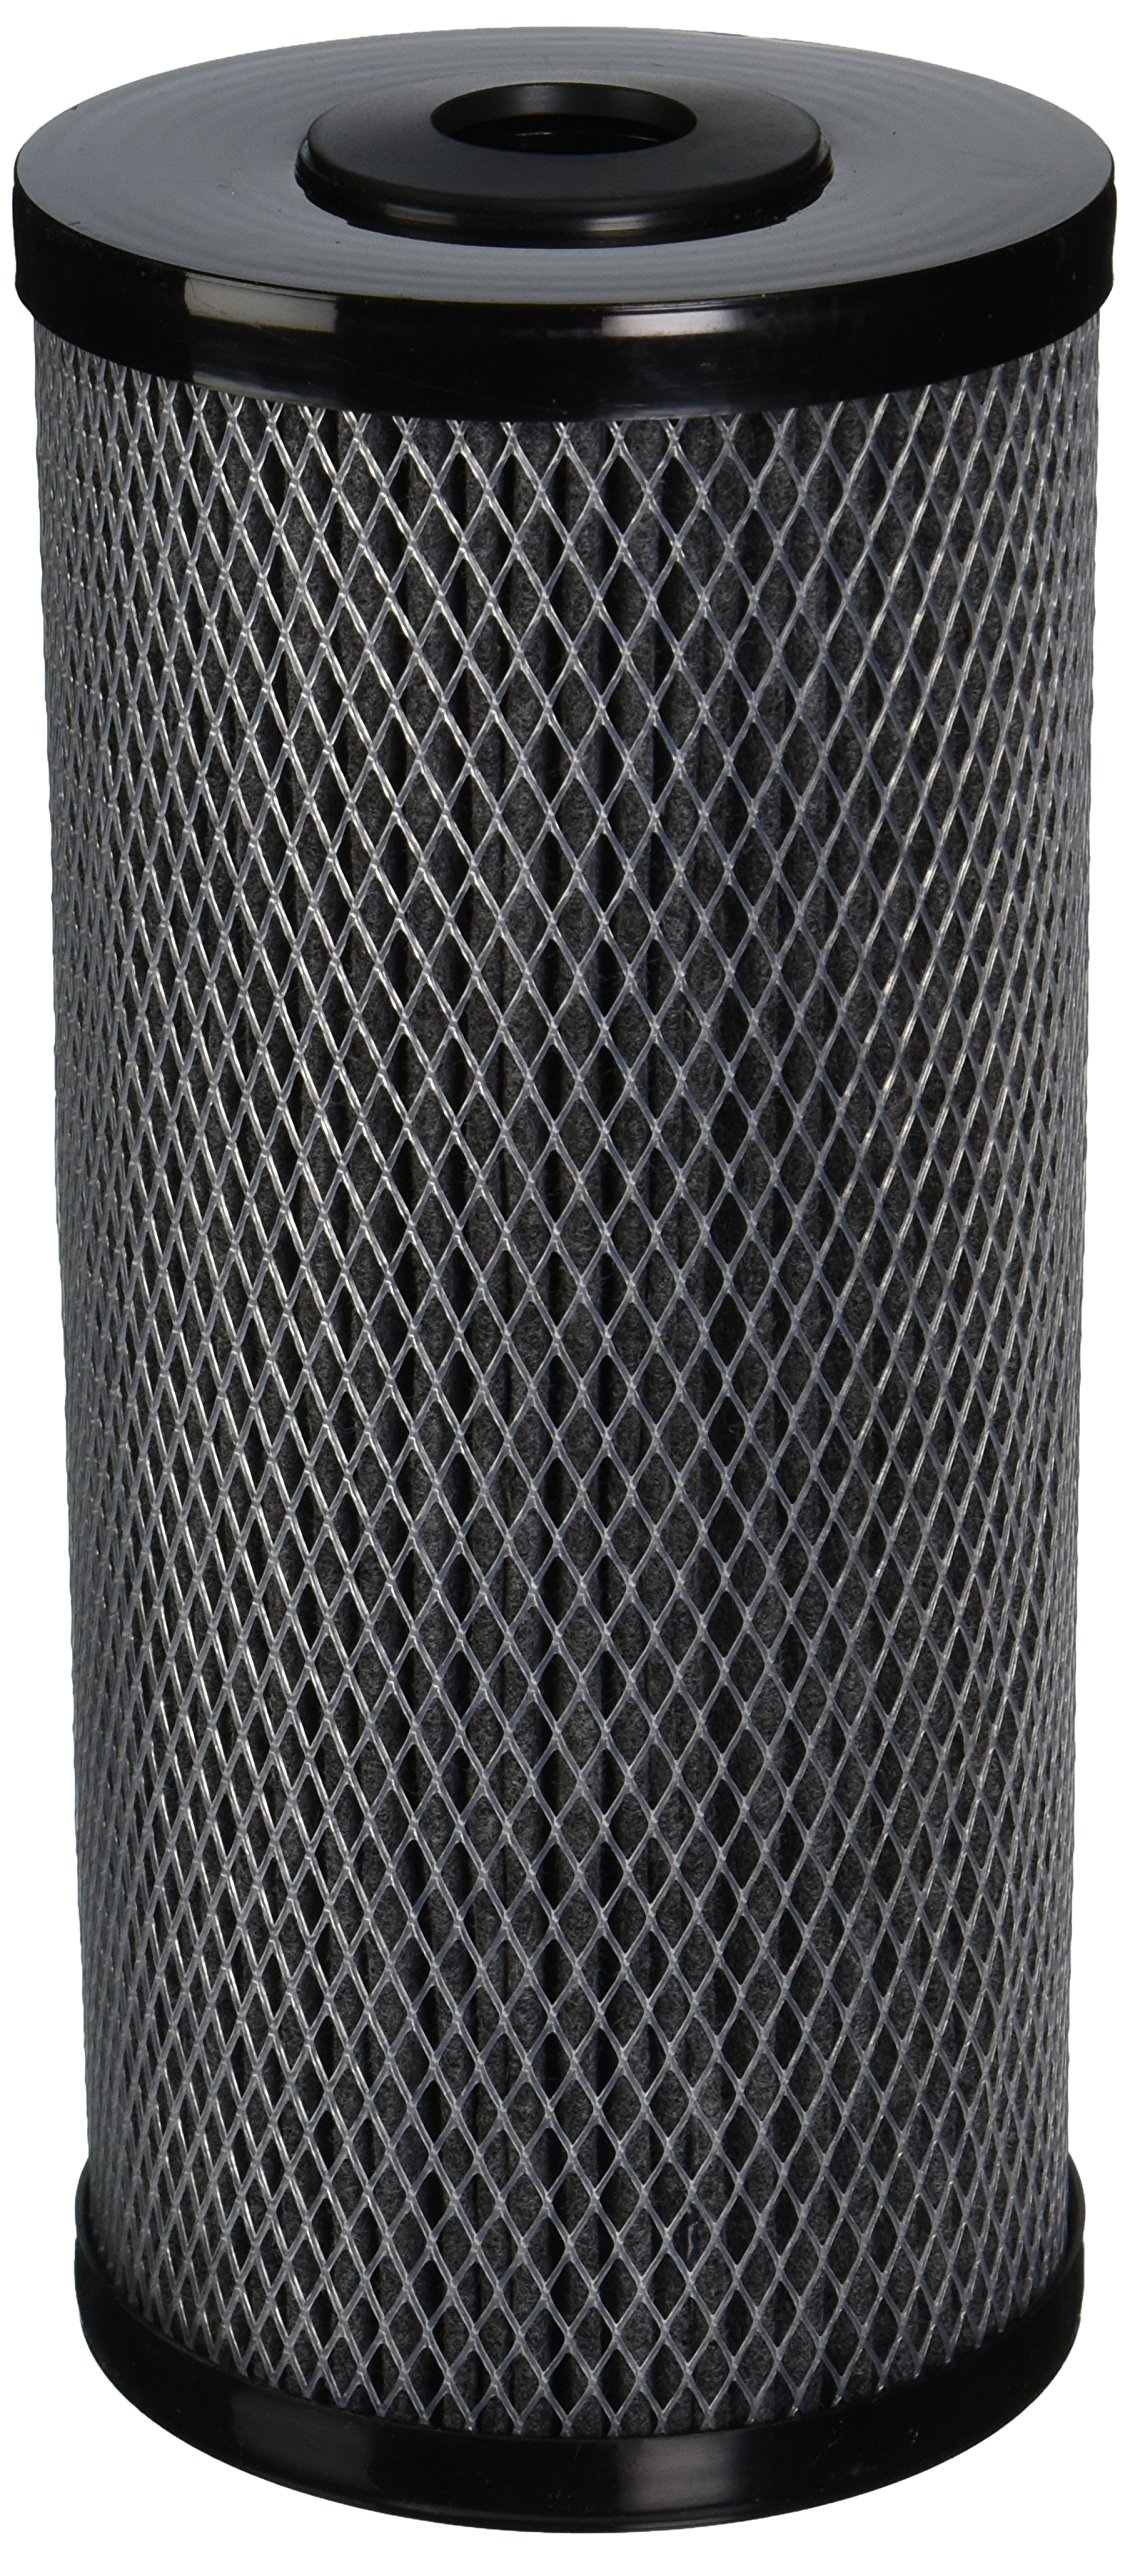 DuPont DUPONT-WFHDC8001 Universal Heavy Duty House Carbon 2 Phase Cartridge by DuPont